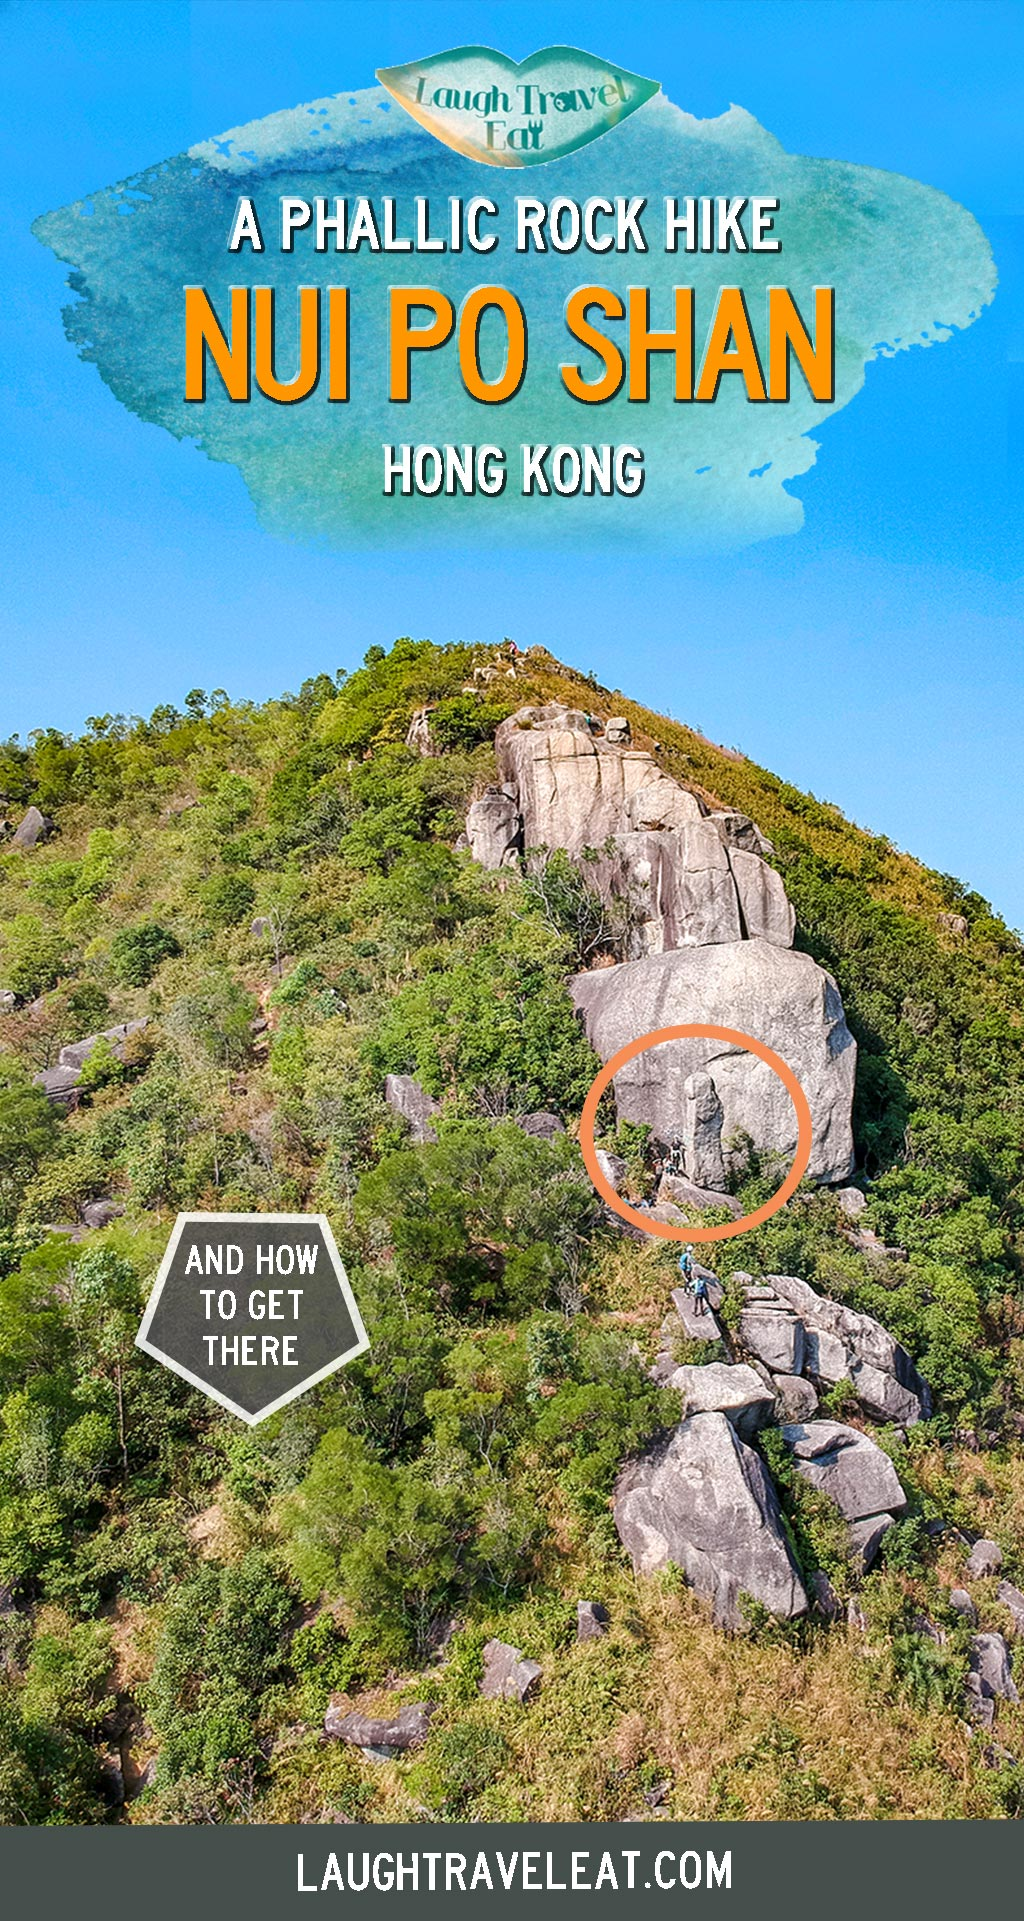 Want to find an interesting hike in Hong Kong that's off the beaten path? What about a hike with a phallic shaped rock? Here's how to hike Nui Po Shan in Shatin, Hong Kong: #HongKong #hike